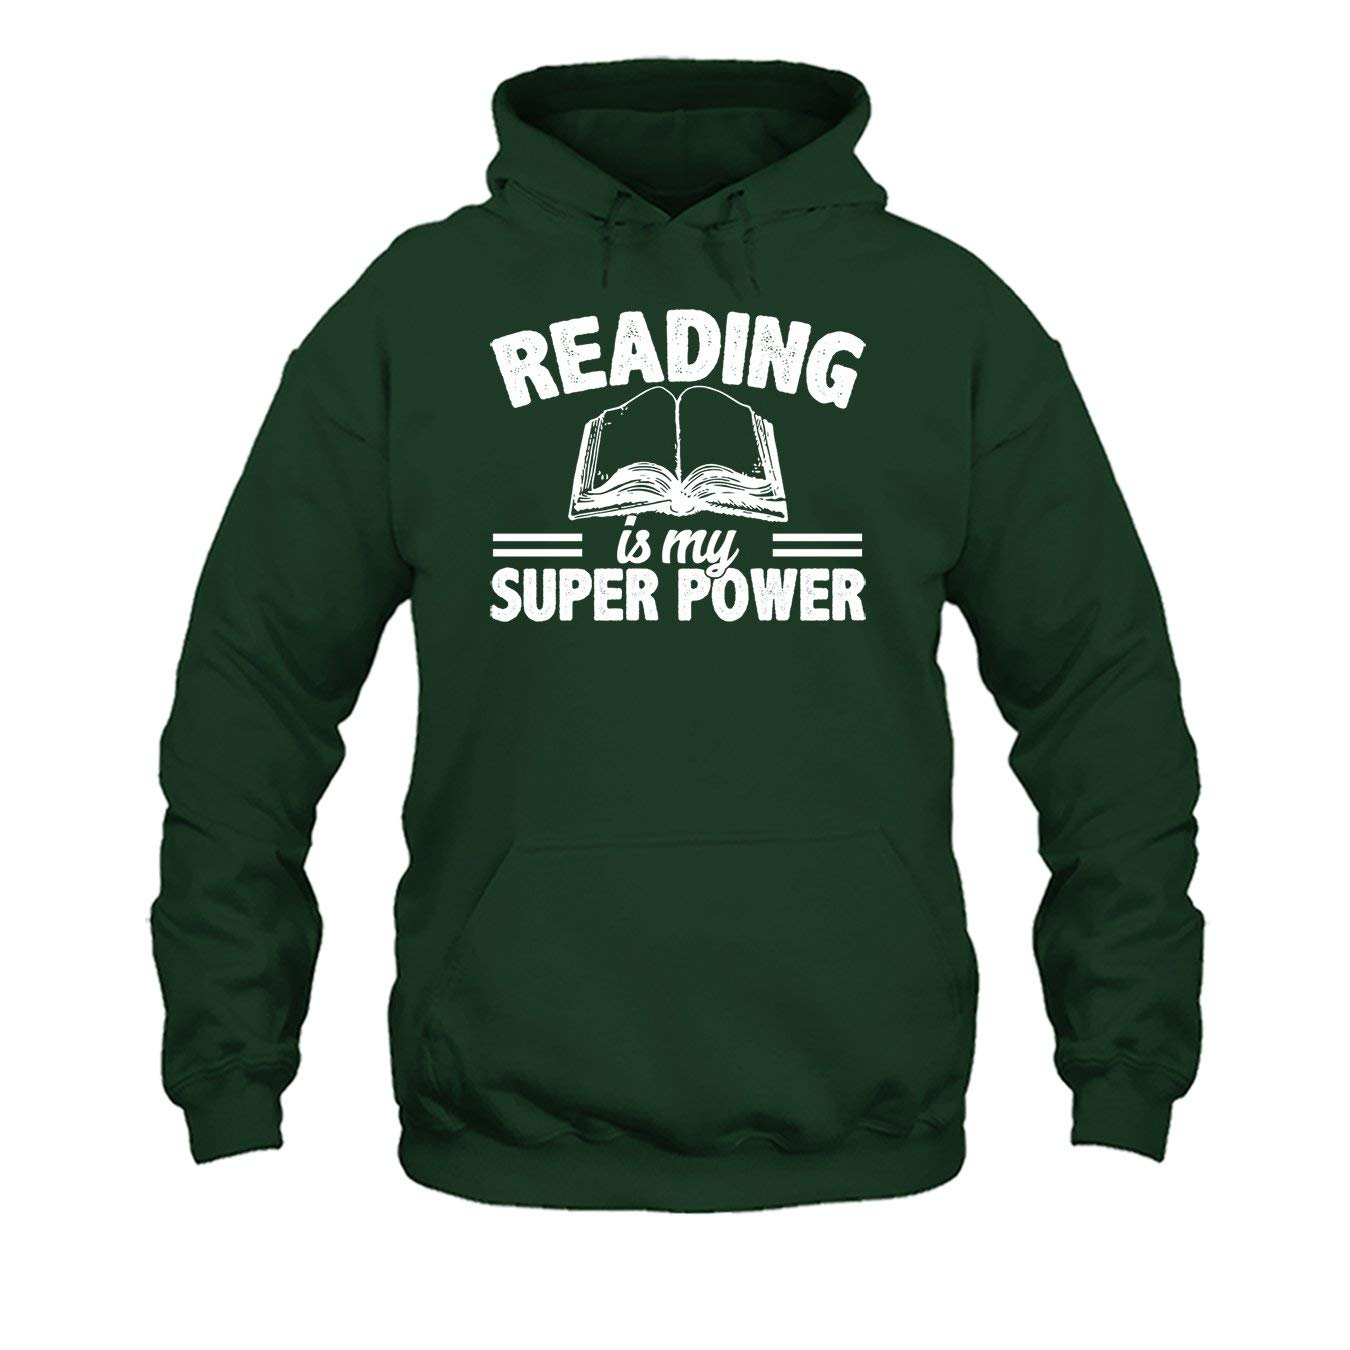 Sweatshirts Tee Shirt Sheep Fly Reading is My Super Power T Shirt